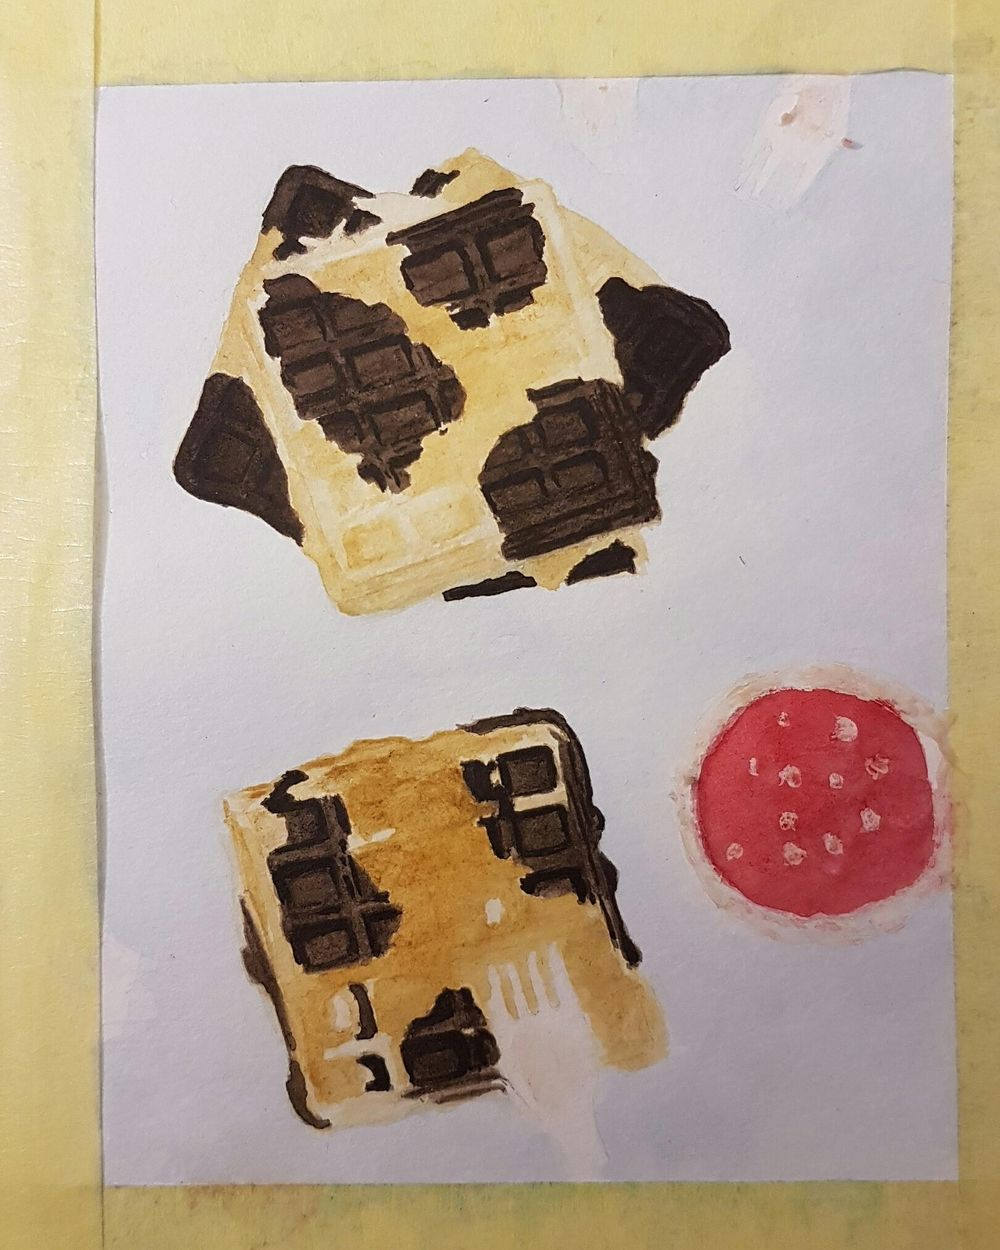 Practice Connecting things in Watercolor - Waffles - image 3 - student project